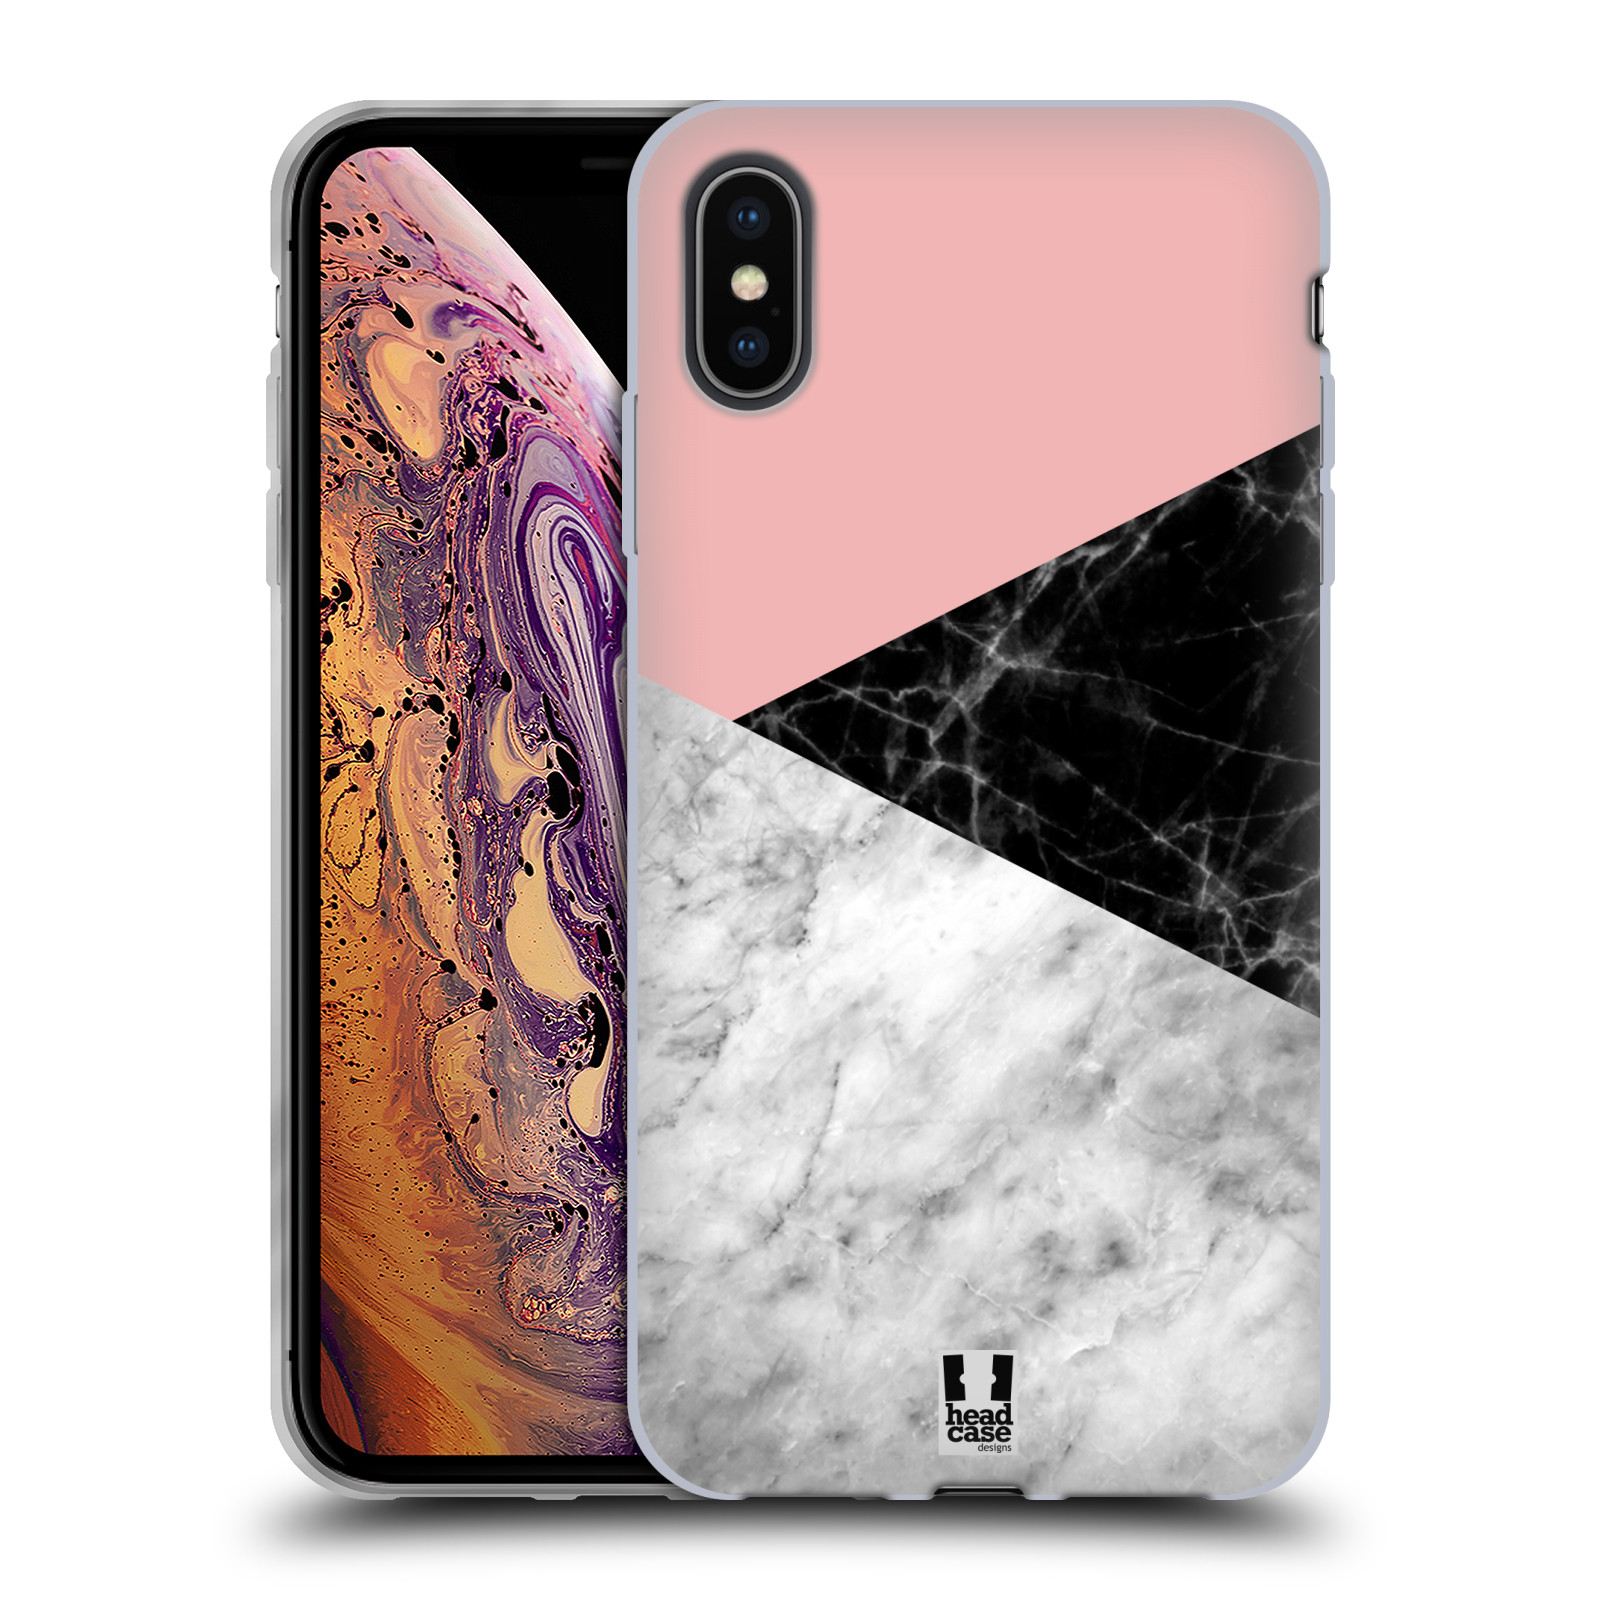 Silikonové pouzdro na mobil Apple iPhone XS Max - Head Case - Mramor mix